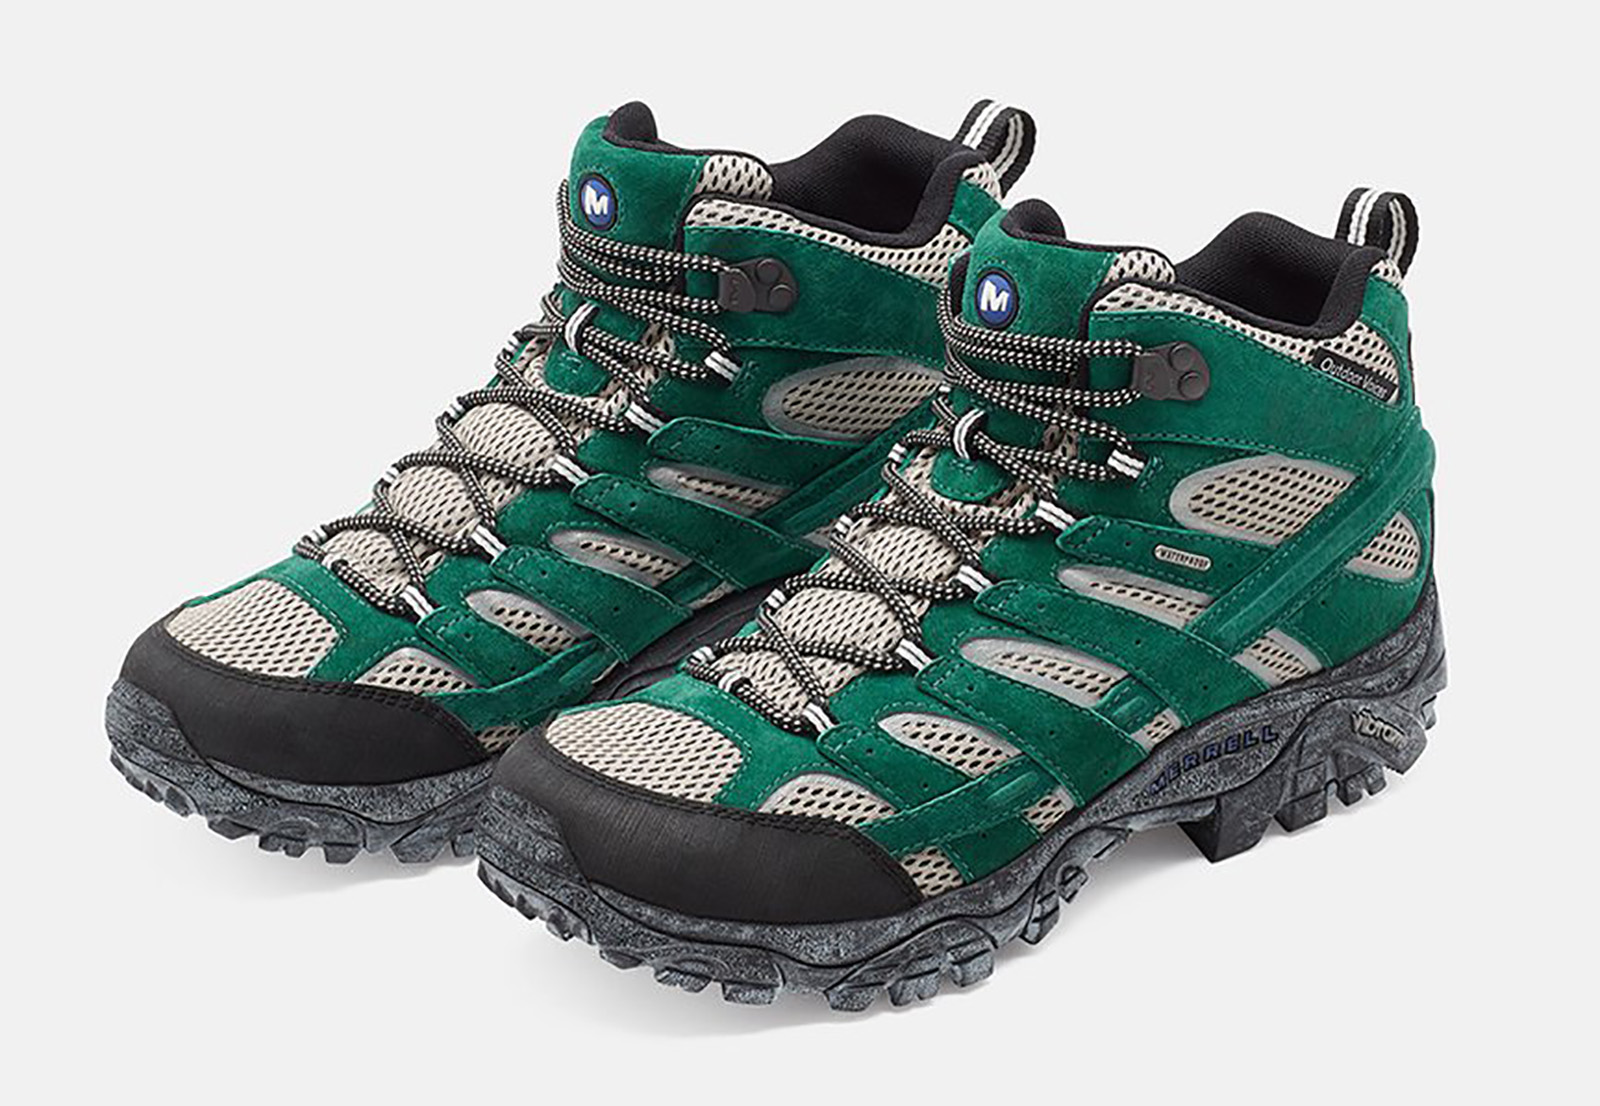 Merrell just dropped a new color of its best-selling hiking boots